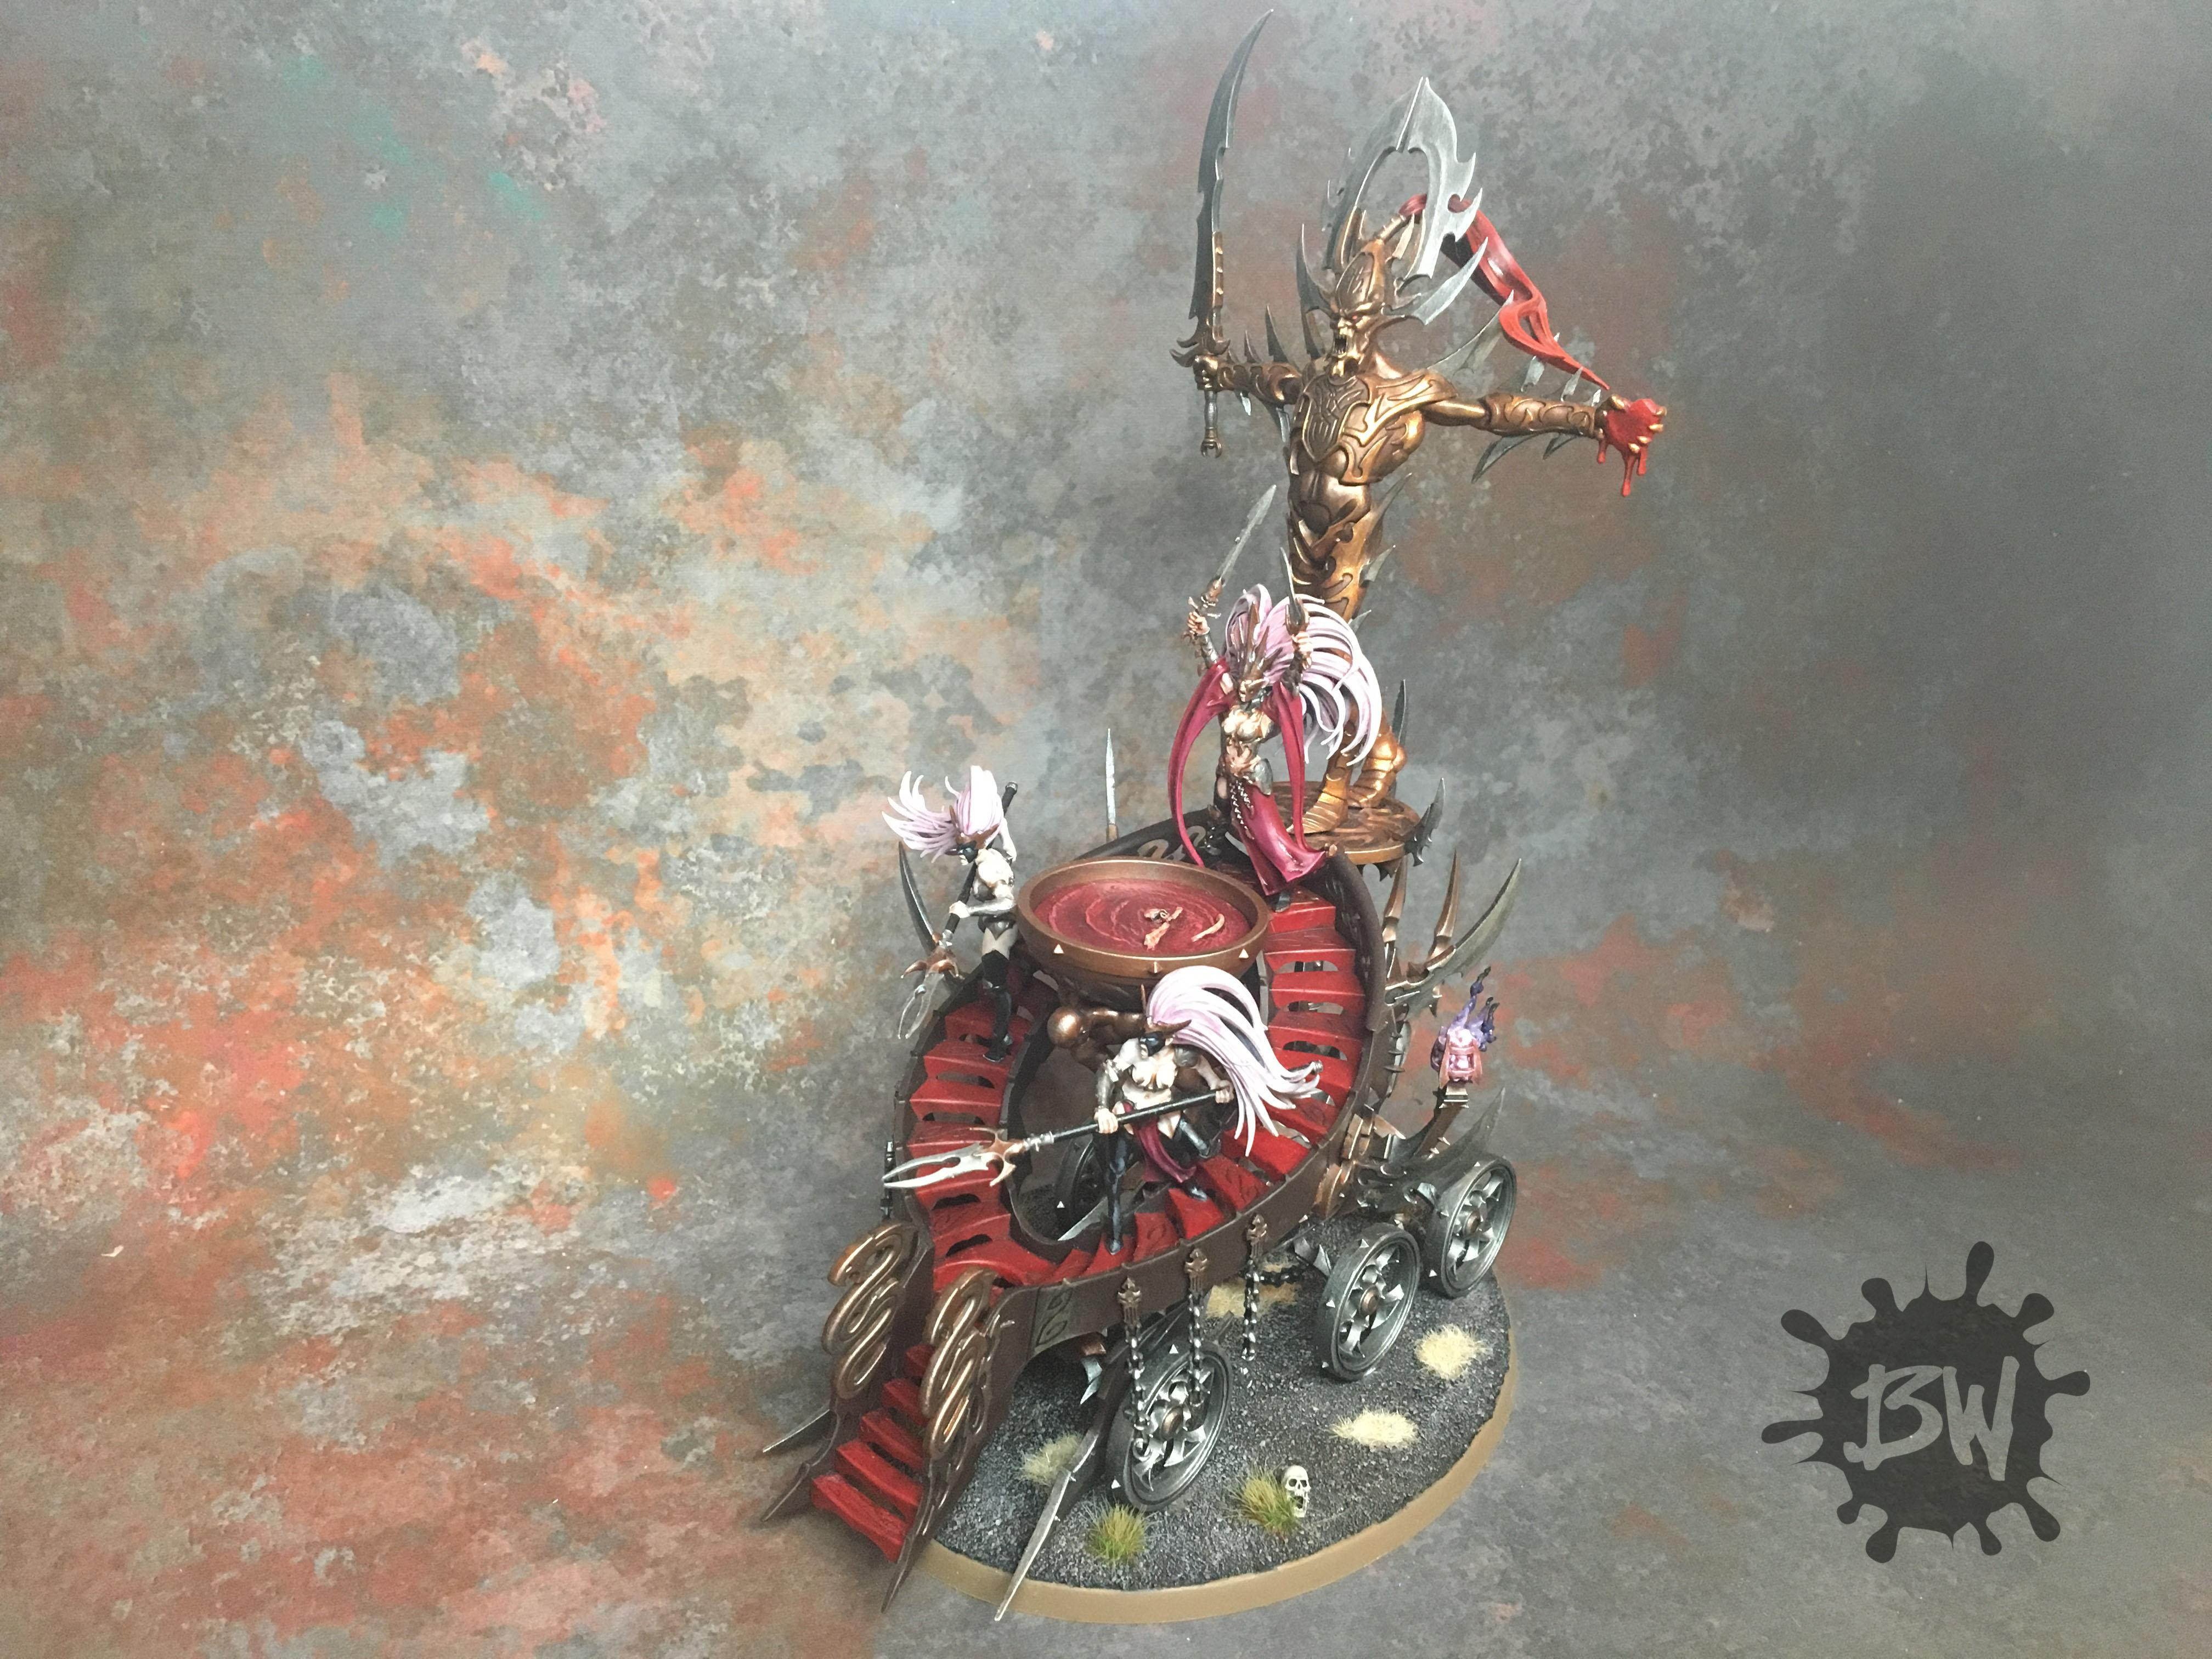 Age Of Sigmar, Bw, Daughters Of Khaine, Games Workshop, Order, Painting, Slaughter Queen On Cauldron Of Blood, Warhammer Fantasy